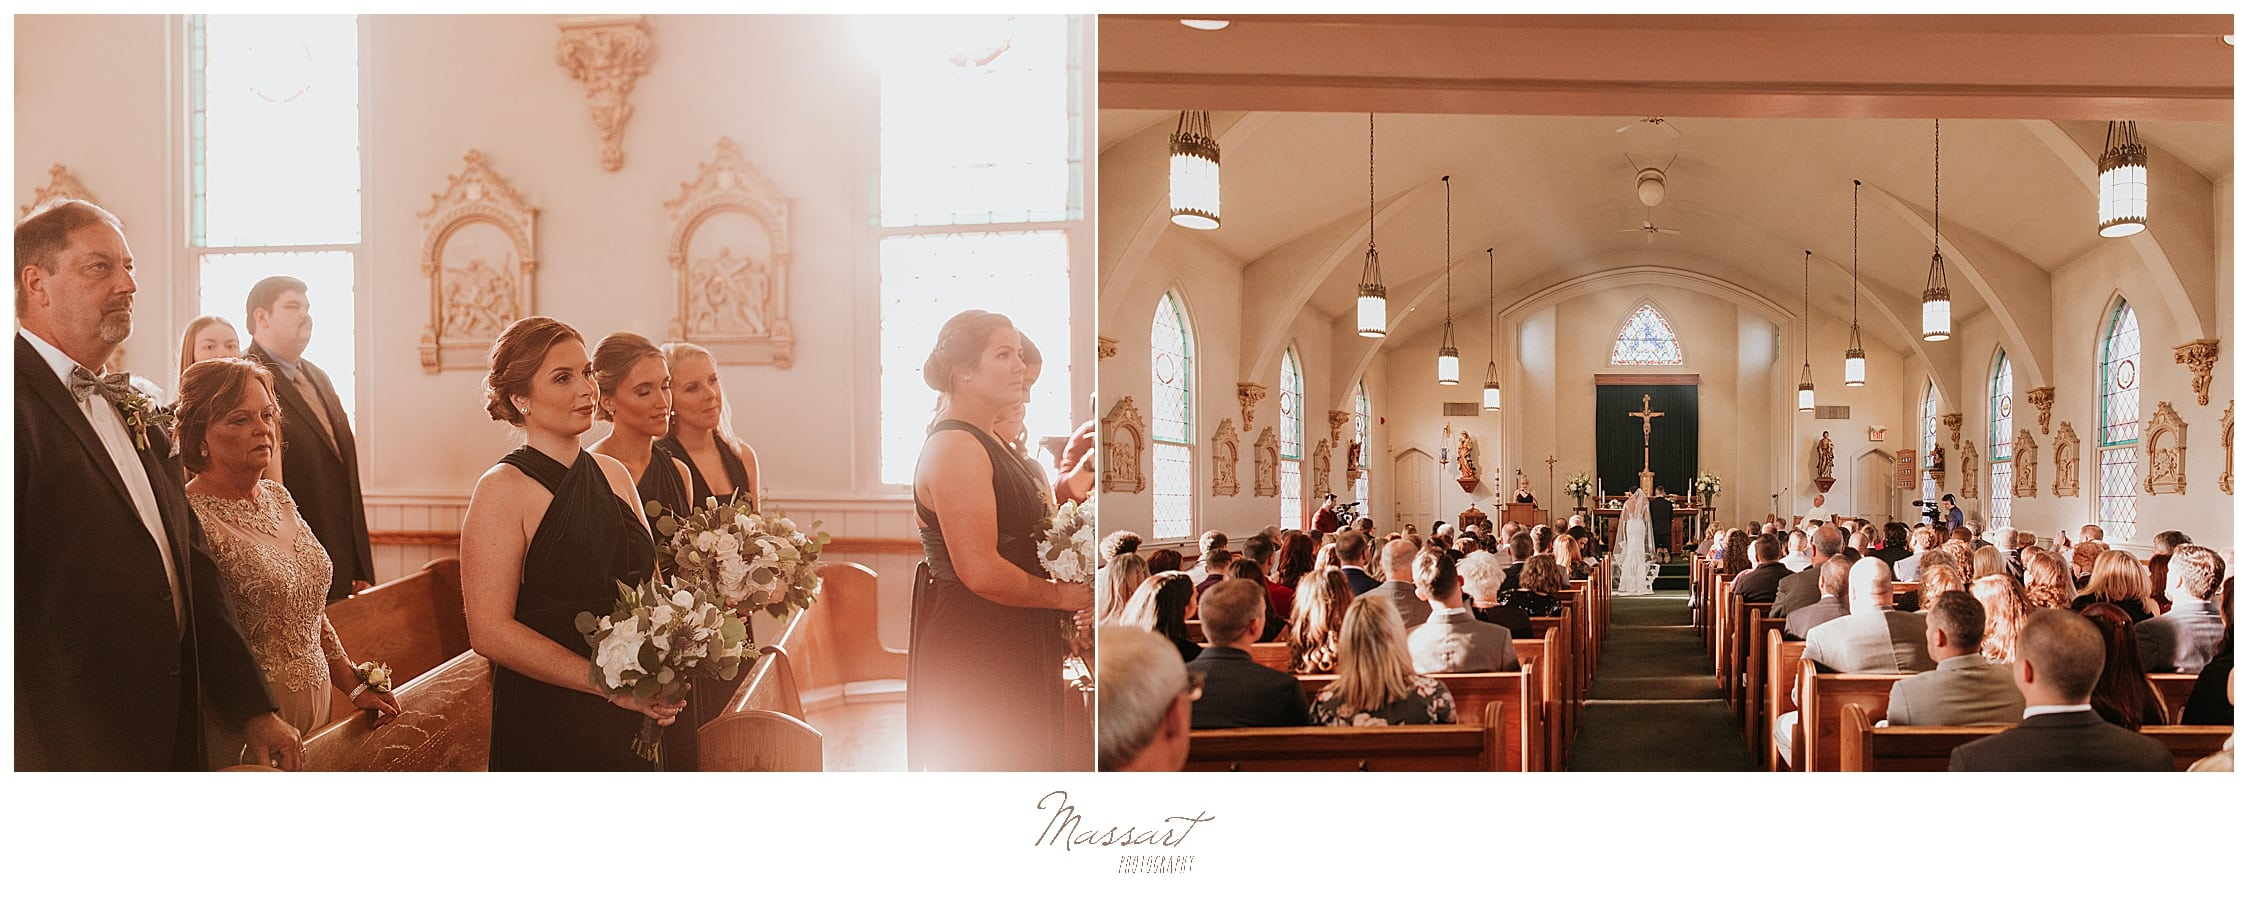 traditional church ceremony in Lincoln MA photographed by Massart Photography